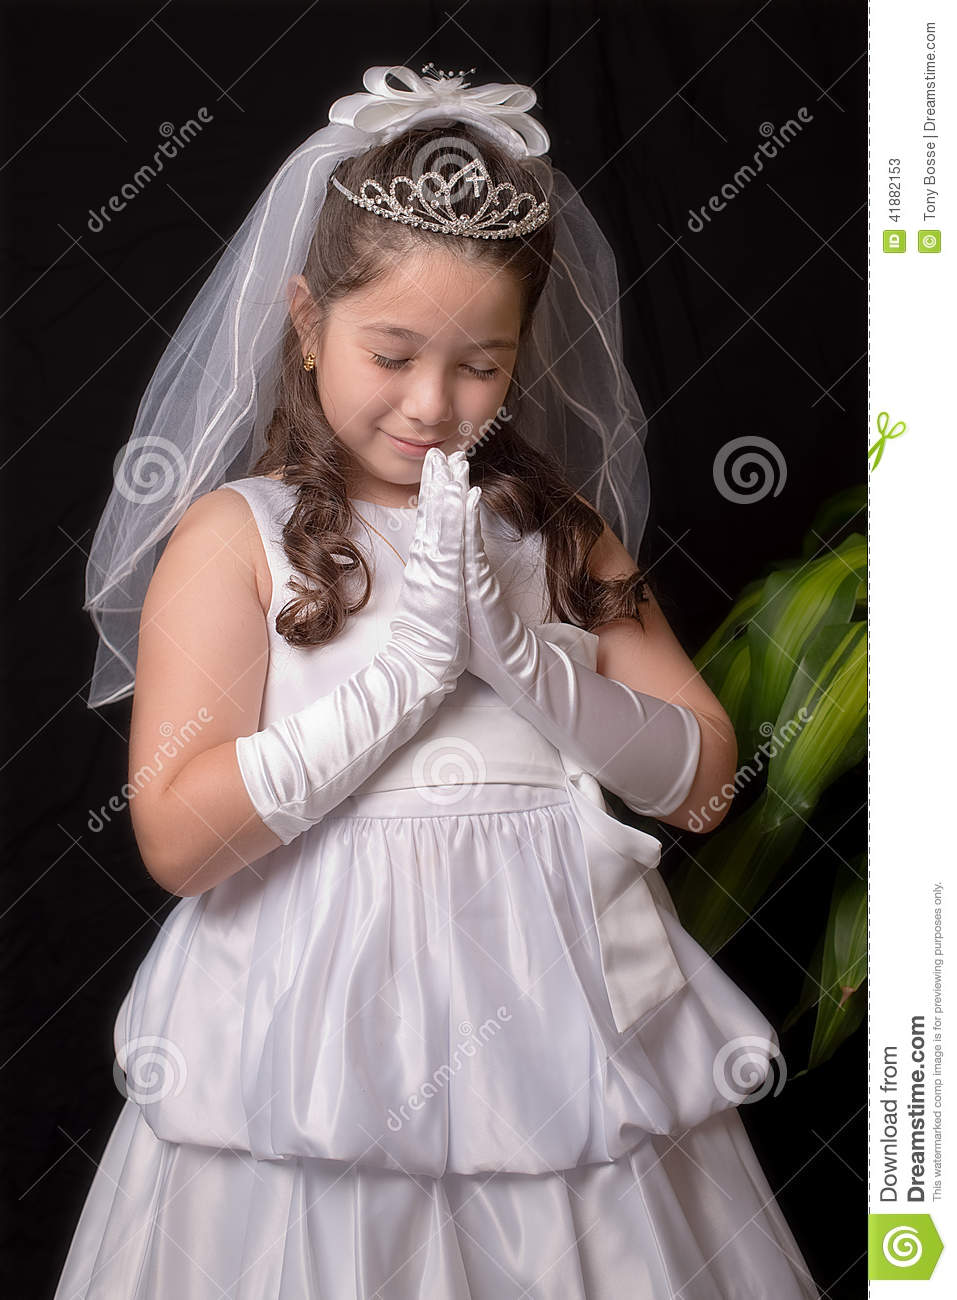 Girl First Birthday Outfit Pinterest: First Communion Stock Photo